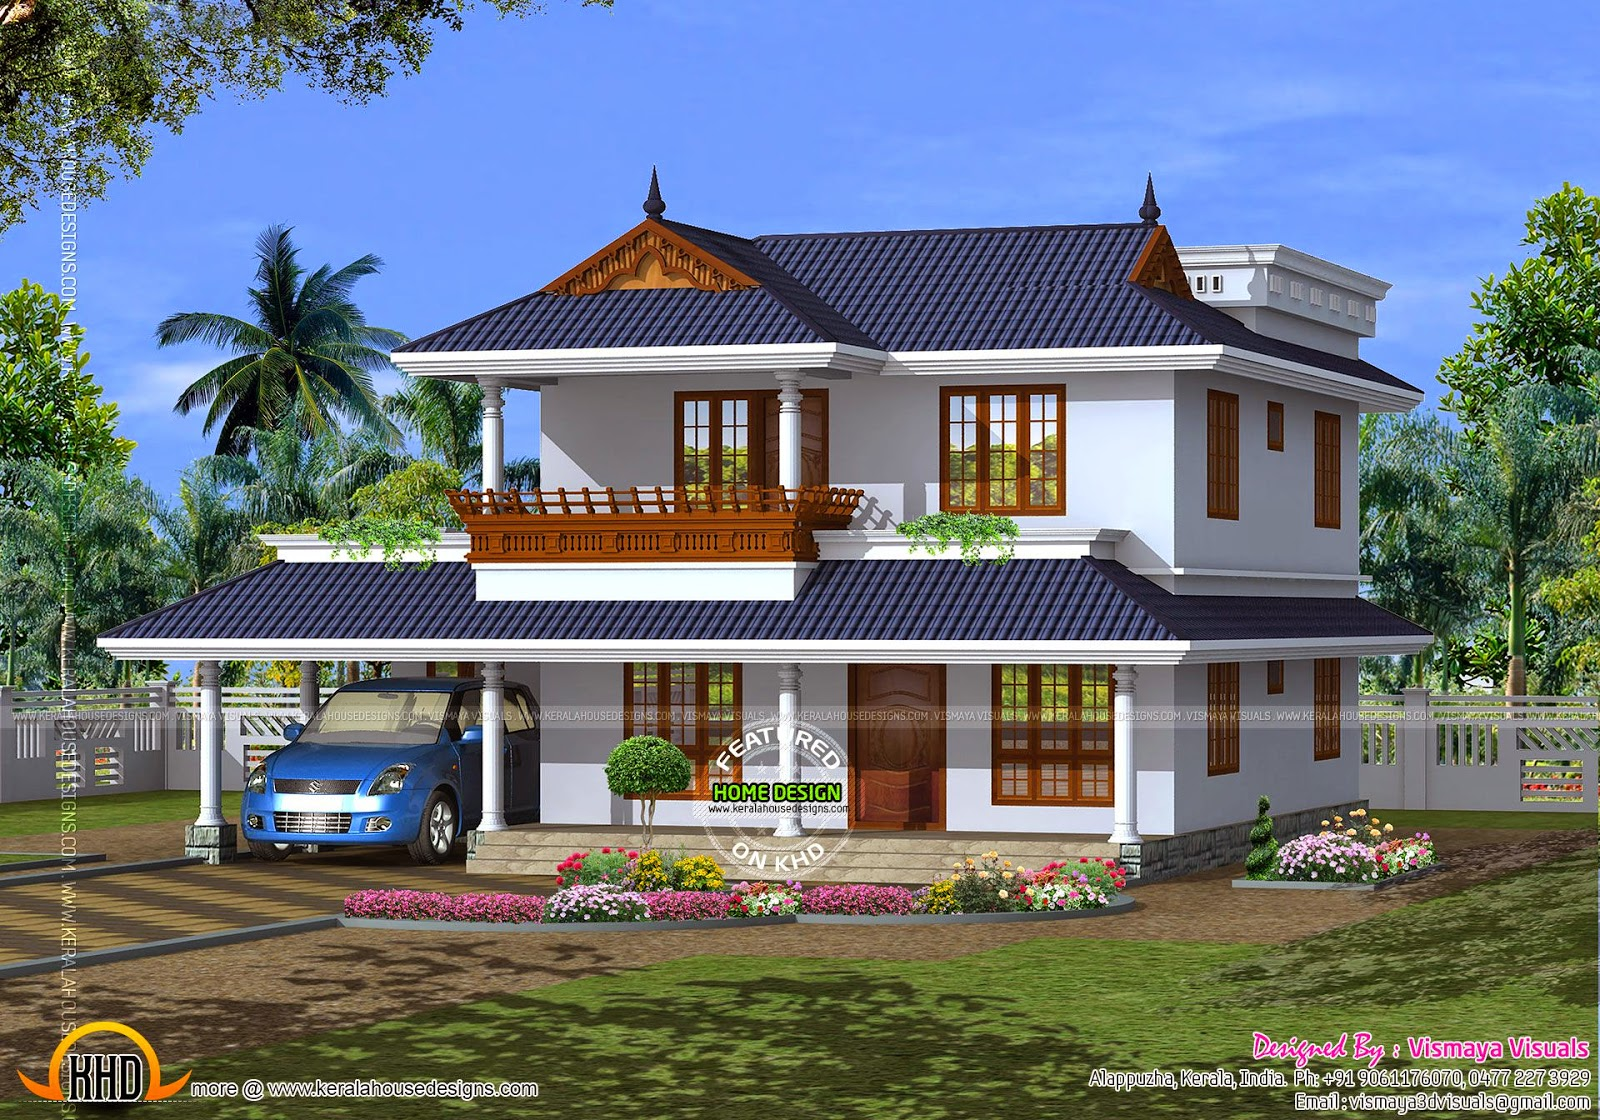 House model kerala kerala home design and floor plans for Kerala house model plan